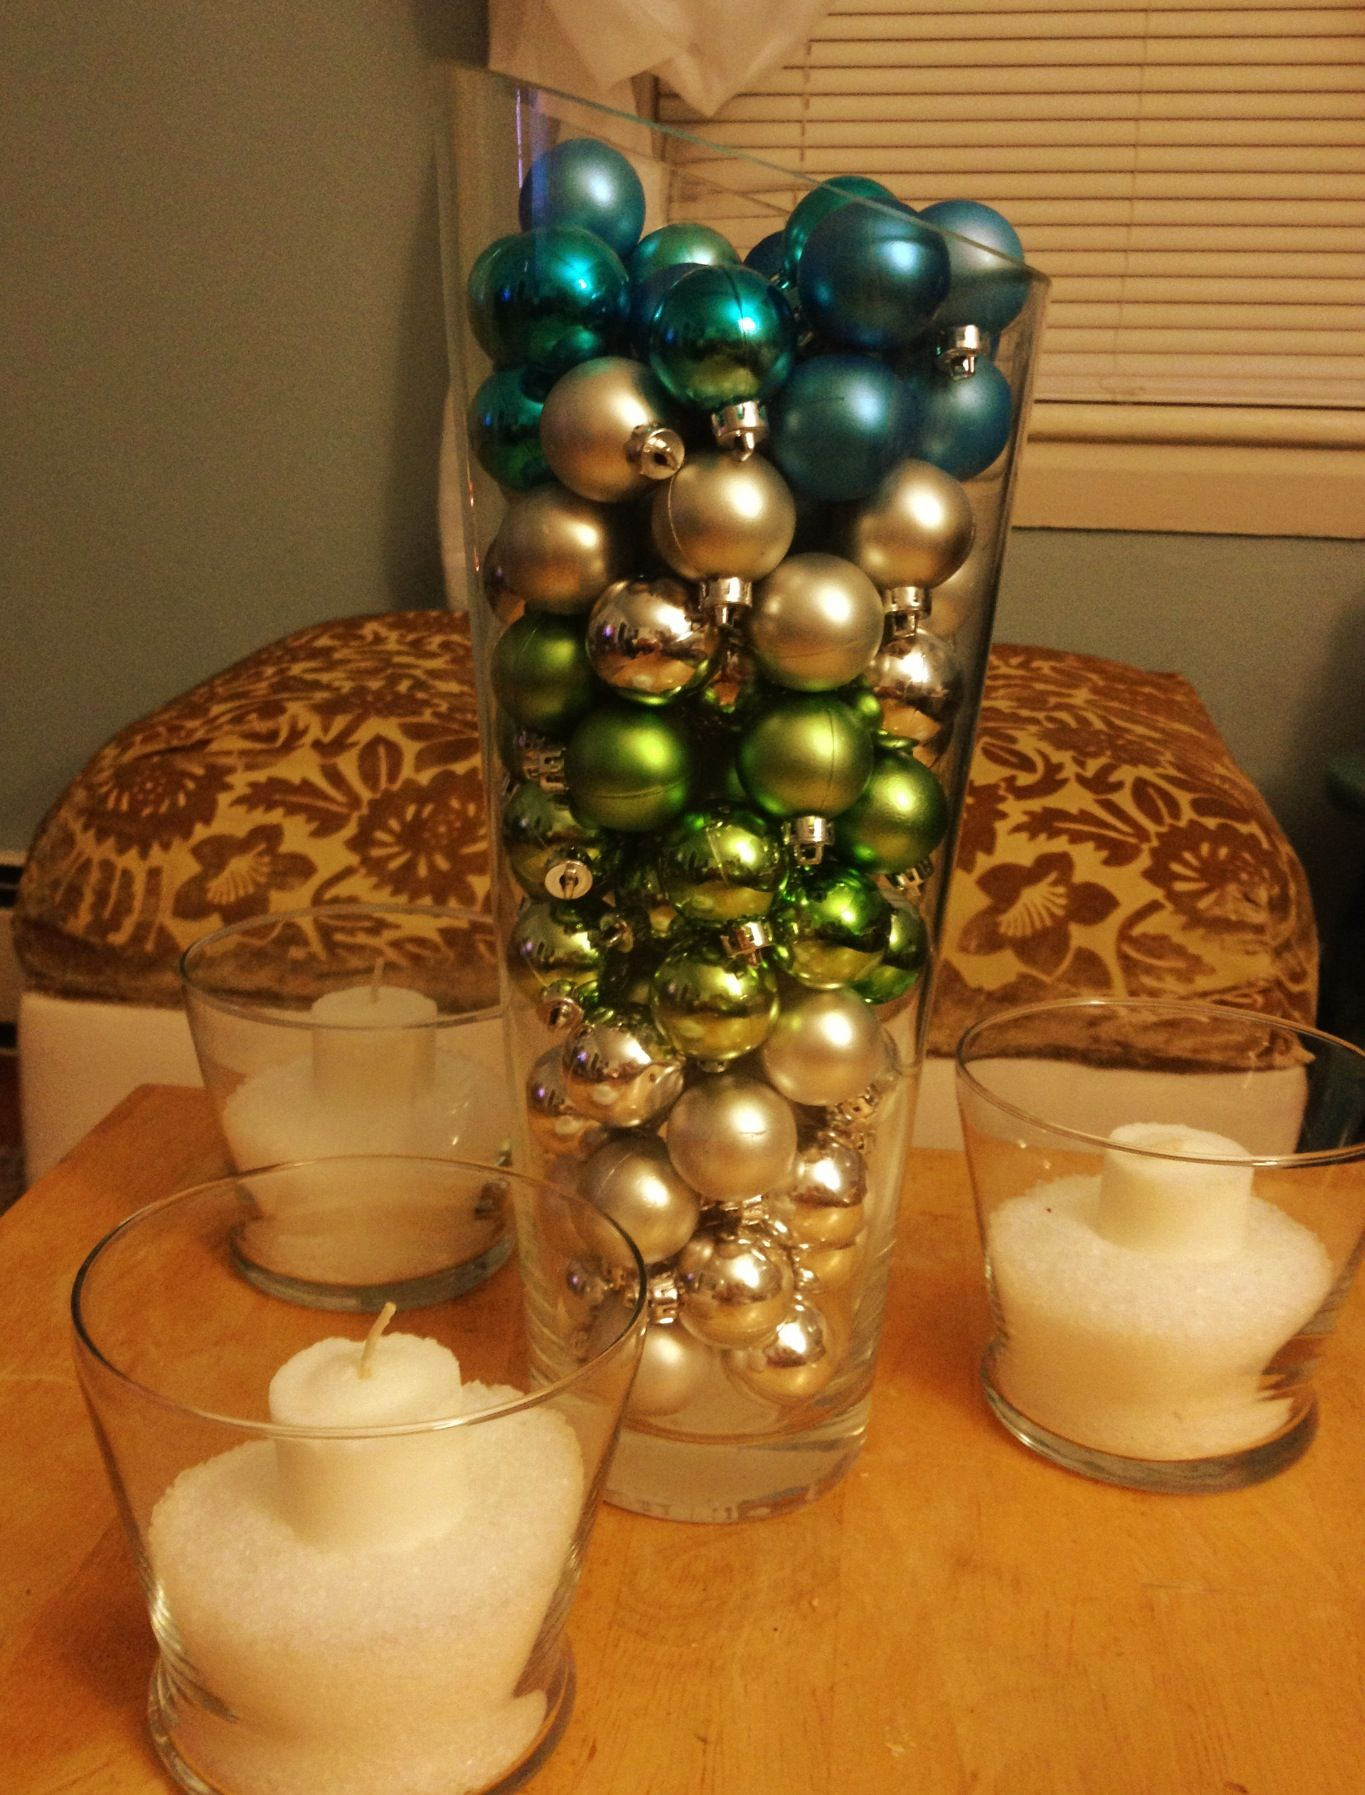 Our coffee table holiday centerpiece decor